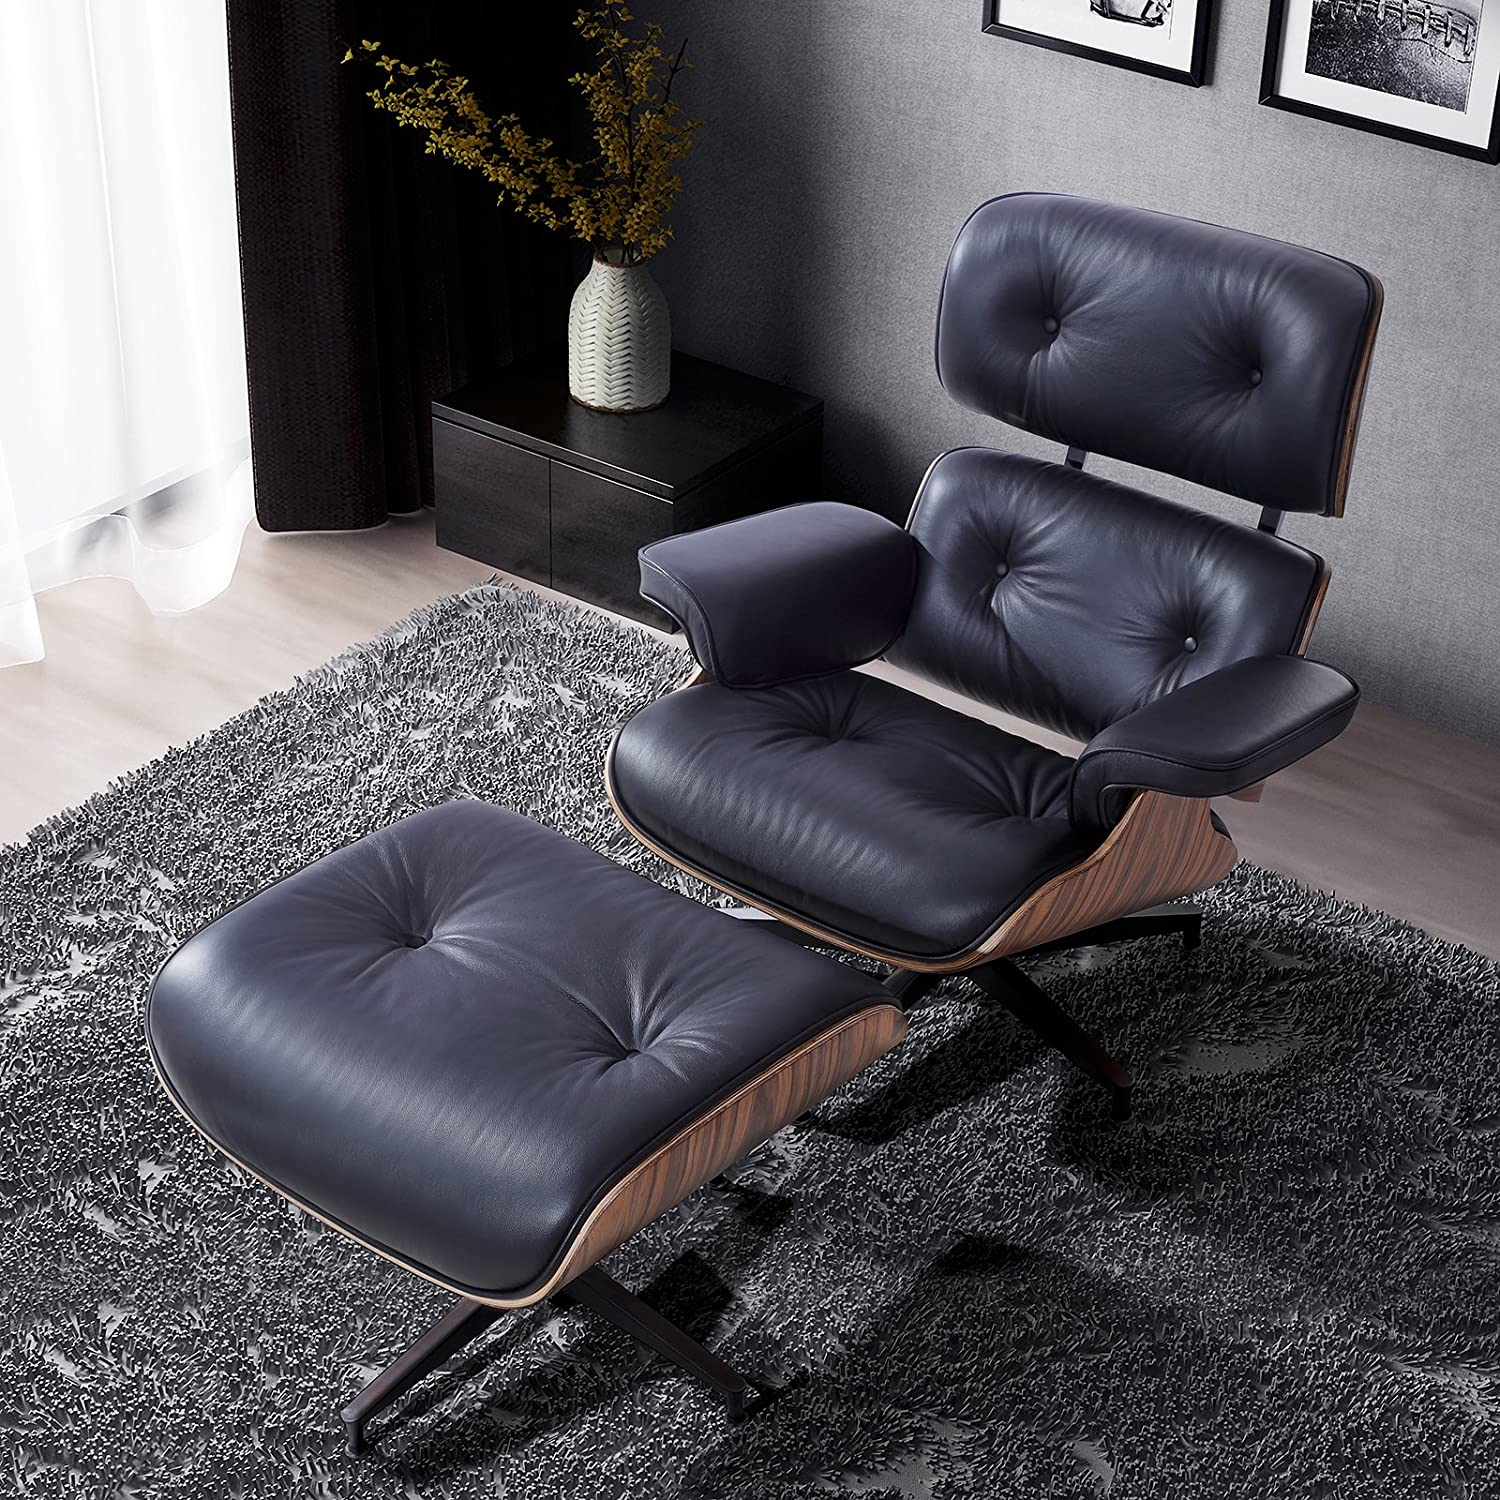 Mecor Lounge Chair with Ottoman, Mid Century Palisander Chair, 100 Grain Italian Leather Recliner Chair with Heavy Duty Base Support for Living Room Black-1